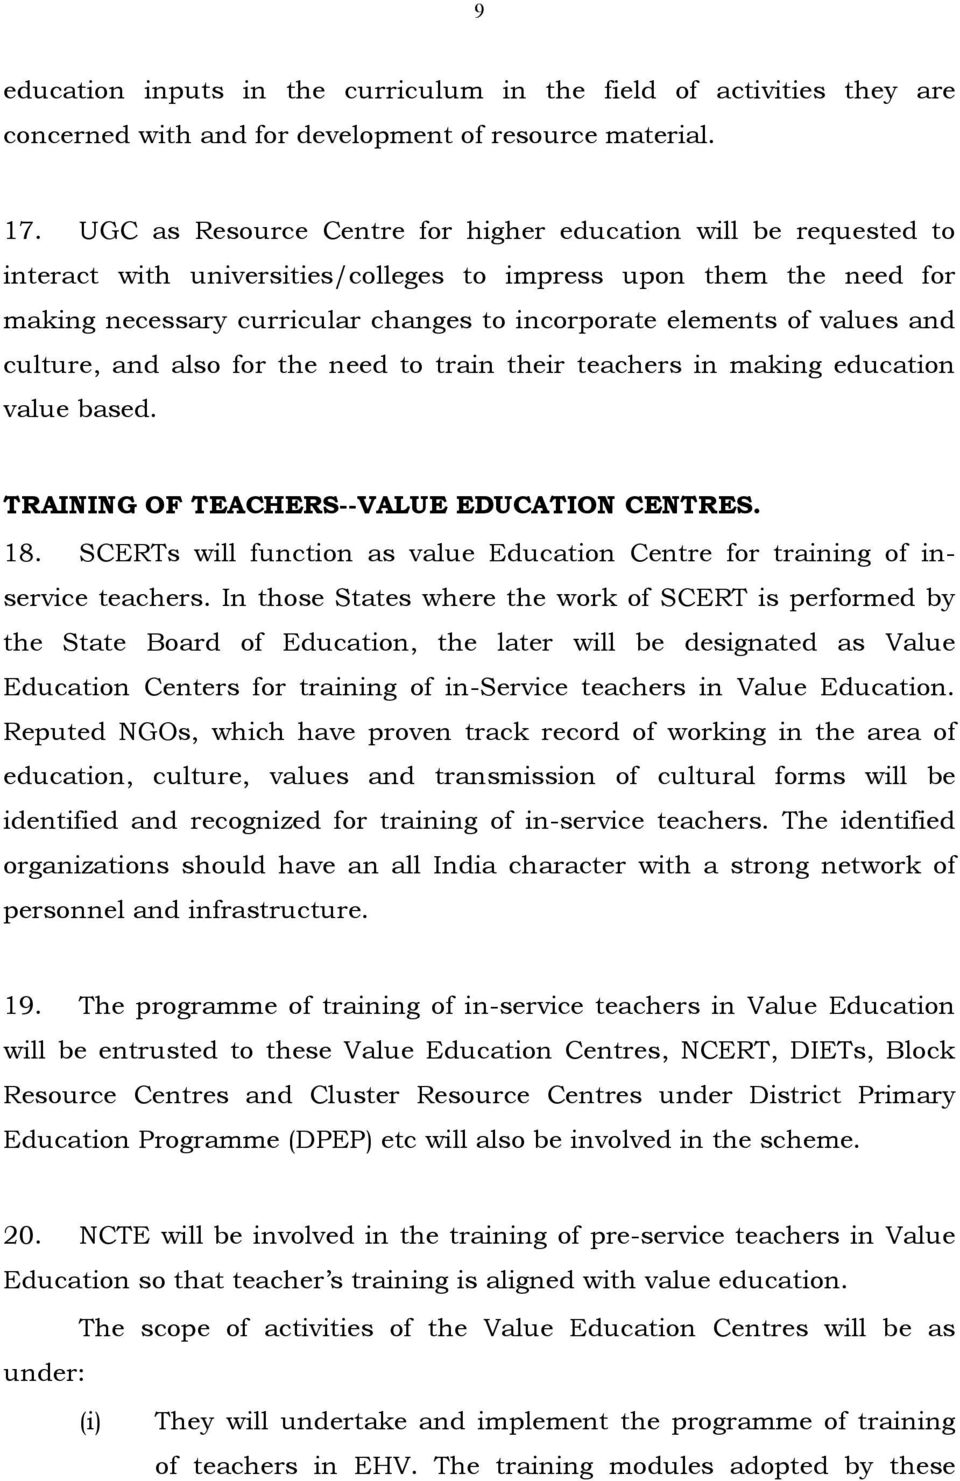 values and culture, and also for the need to train their teachers in making education value based. TRAINING OF TEACHERS--VALUE EDUCATION CENTRES. 18.